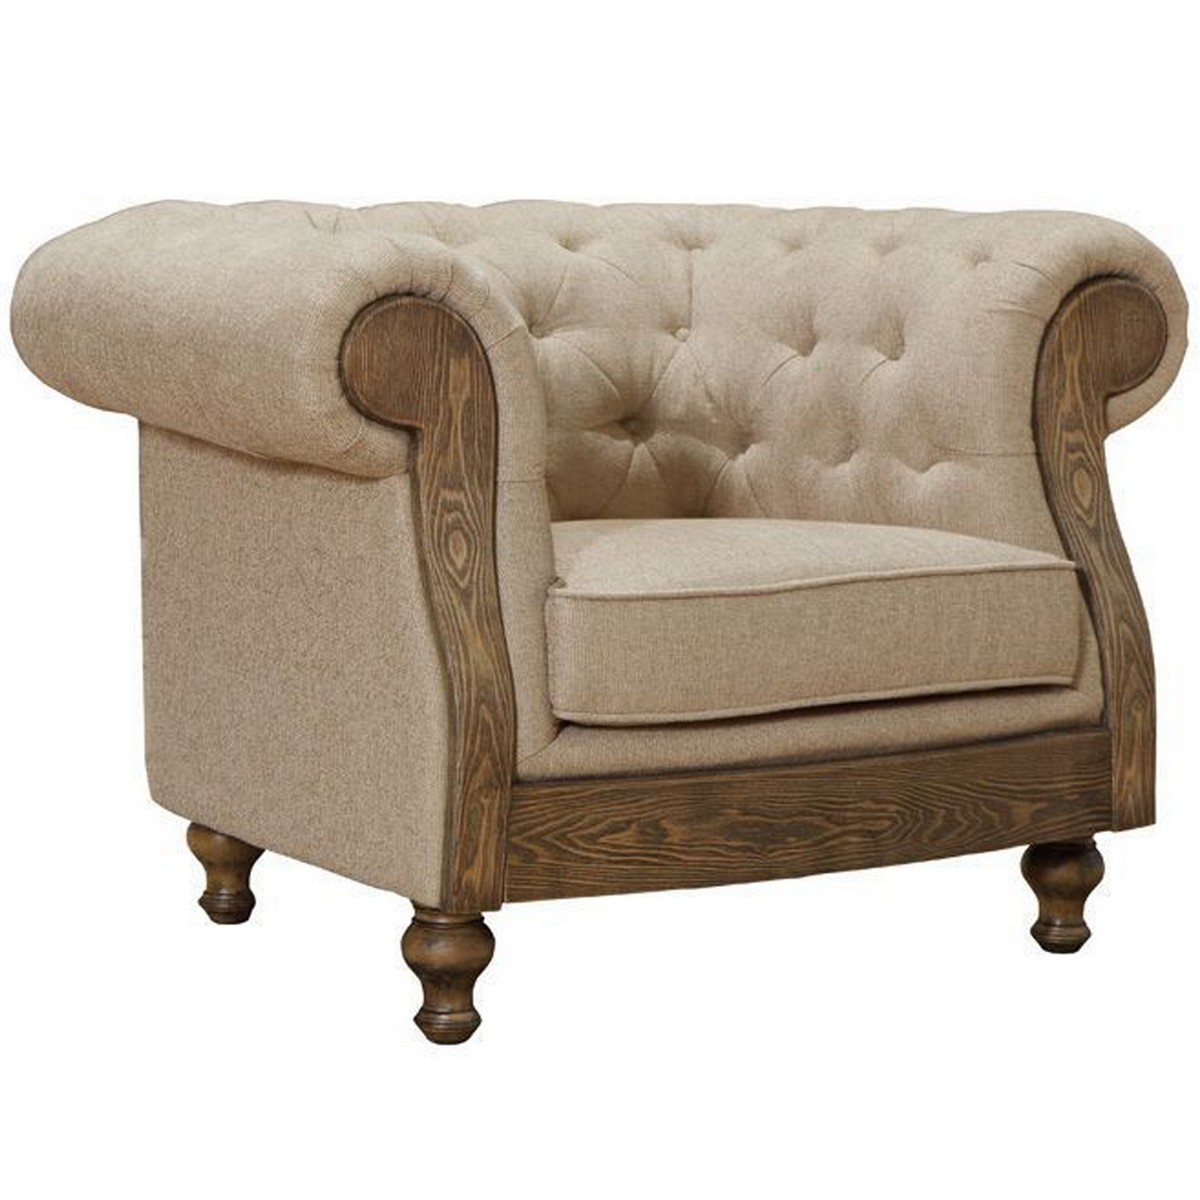 Armen Living Barstow Chair In Sand Fabric